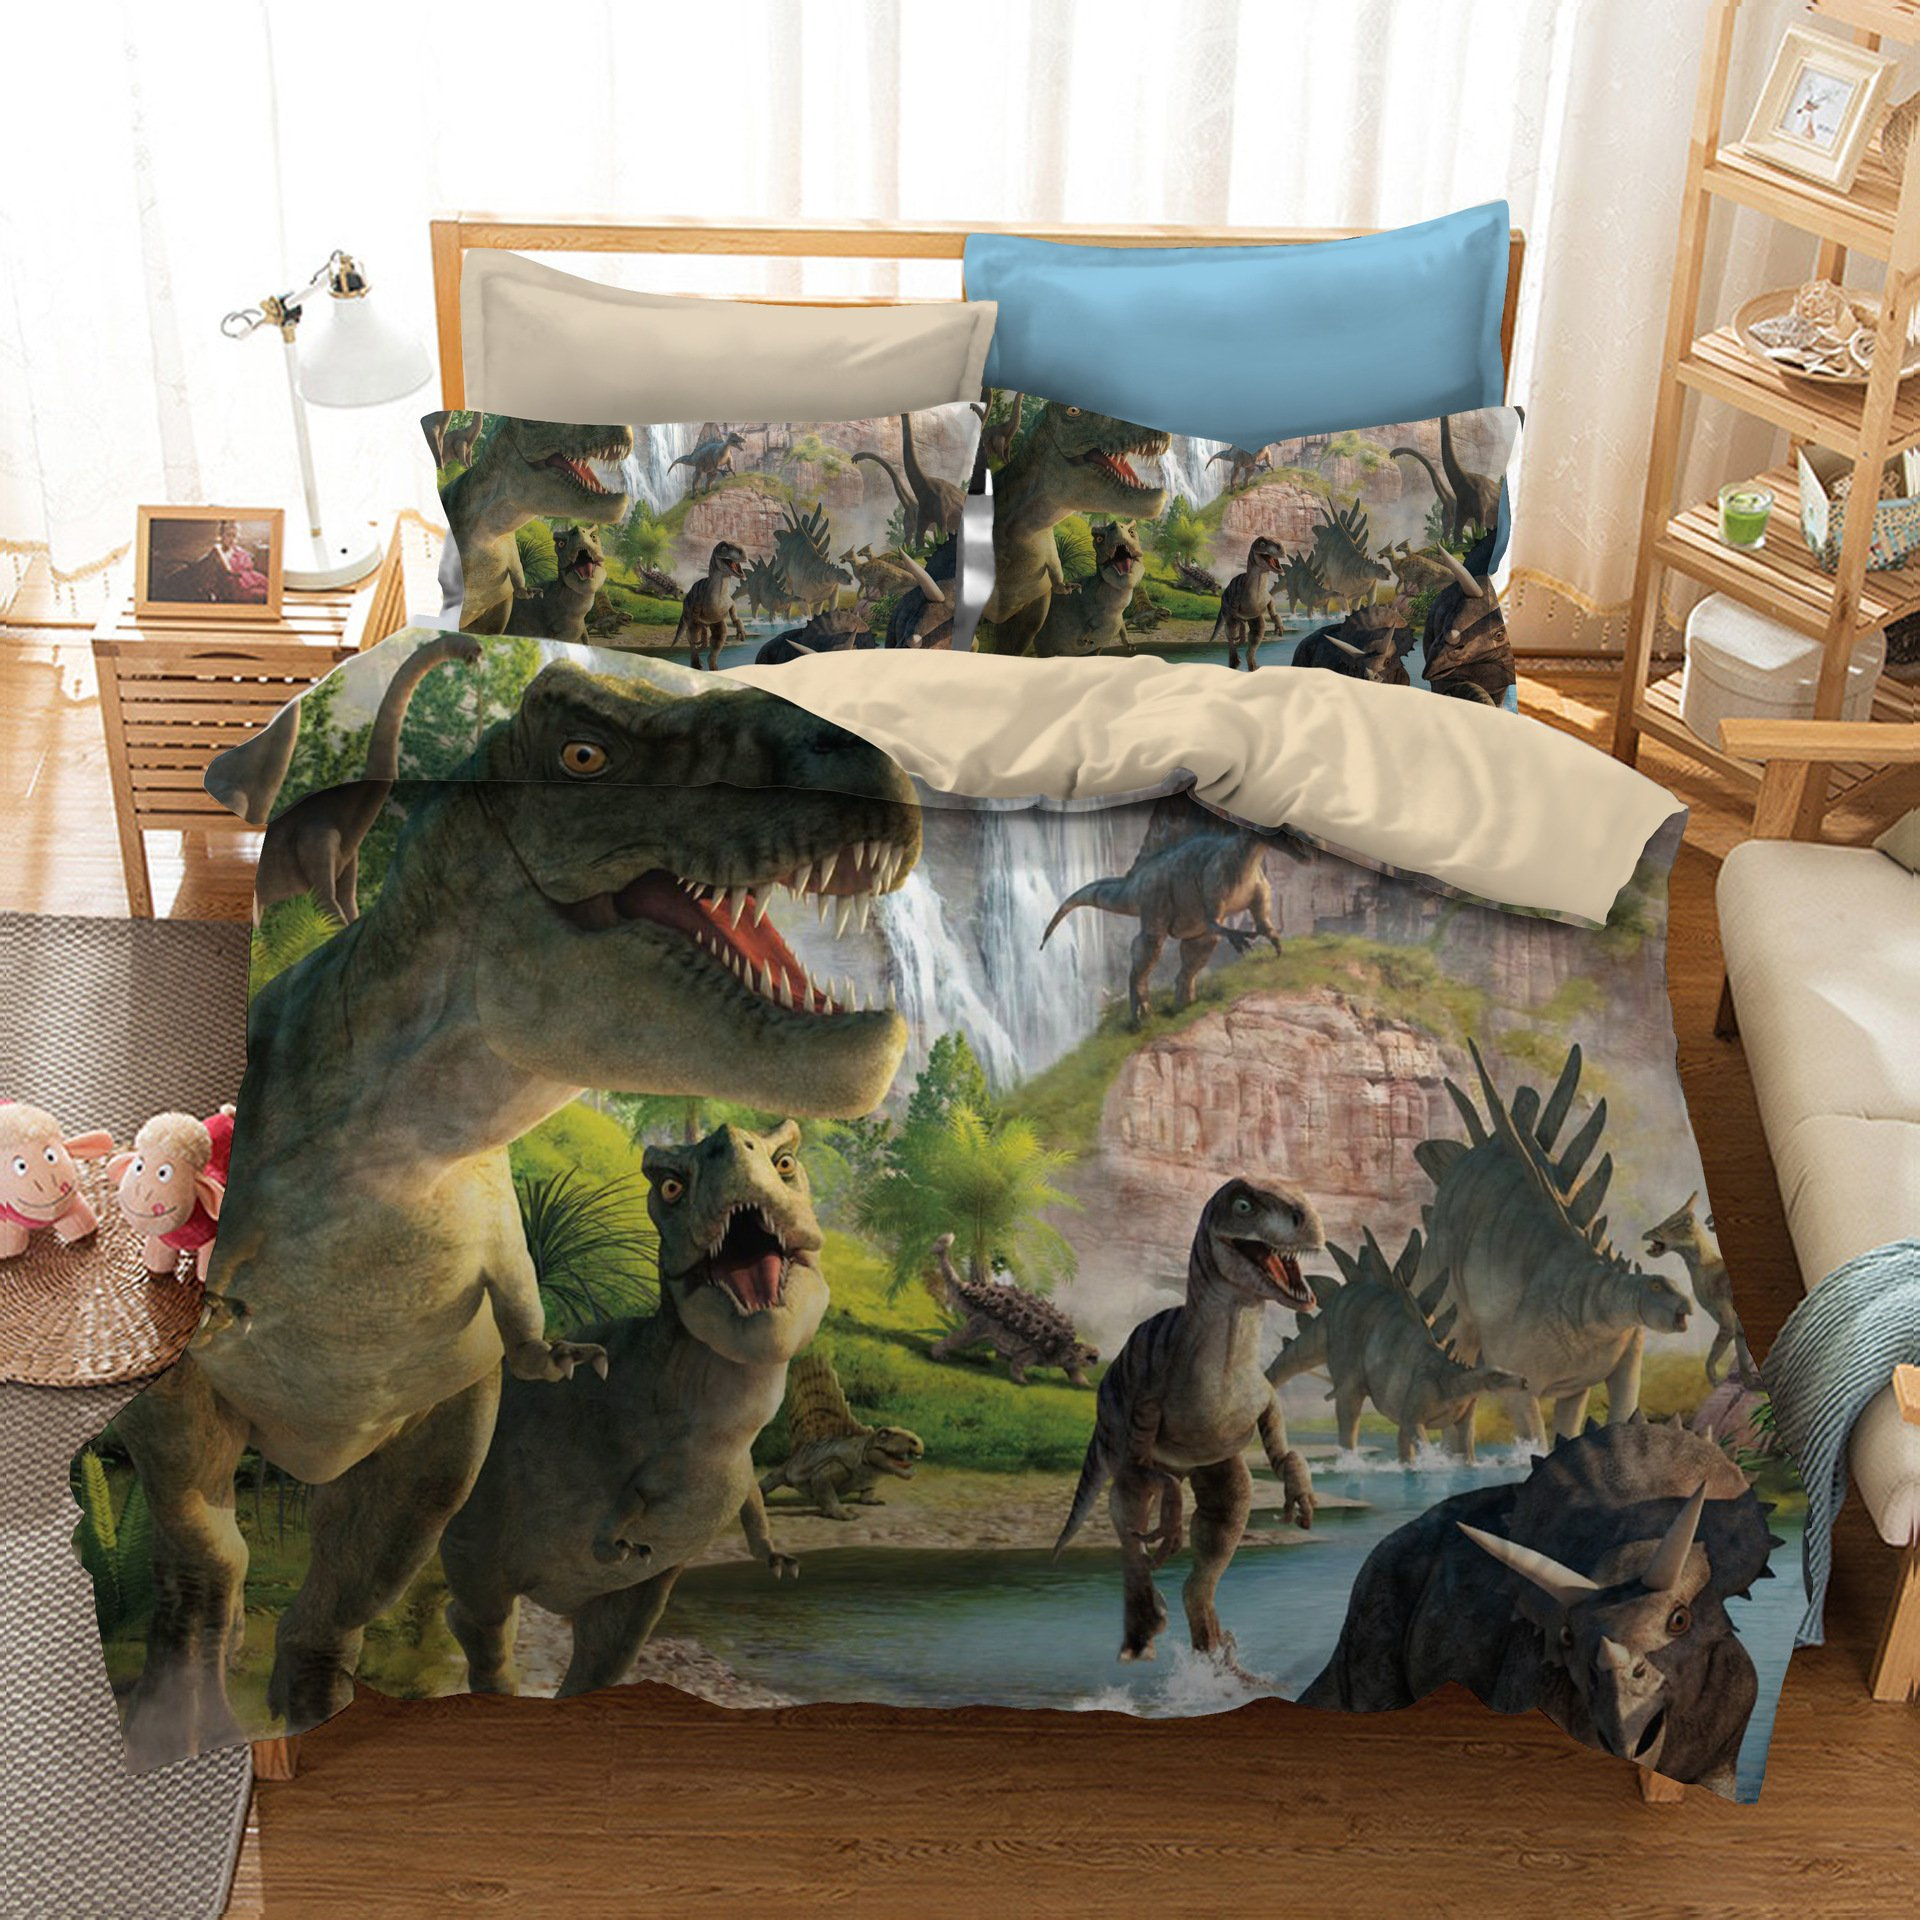 ADASMILE A & S 3D Dinosaur World Bedding Sets 3 Pieces Jurassic Duvet Quilt Cover Set for Kids Boys Teens, Queen Size by ADASMILE A & S